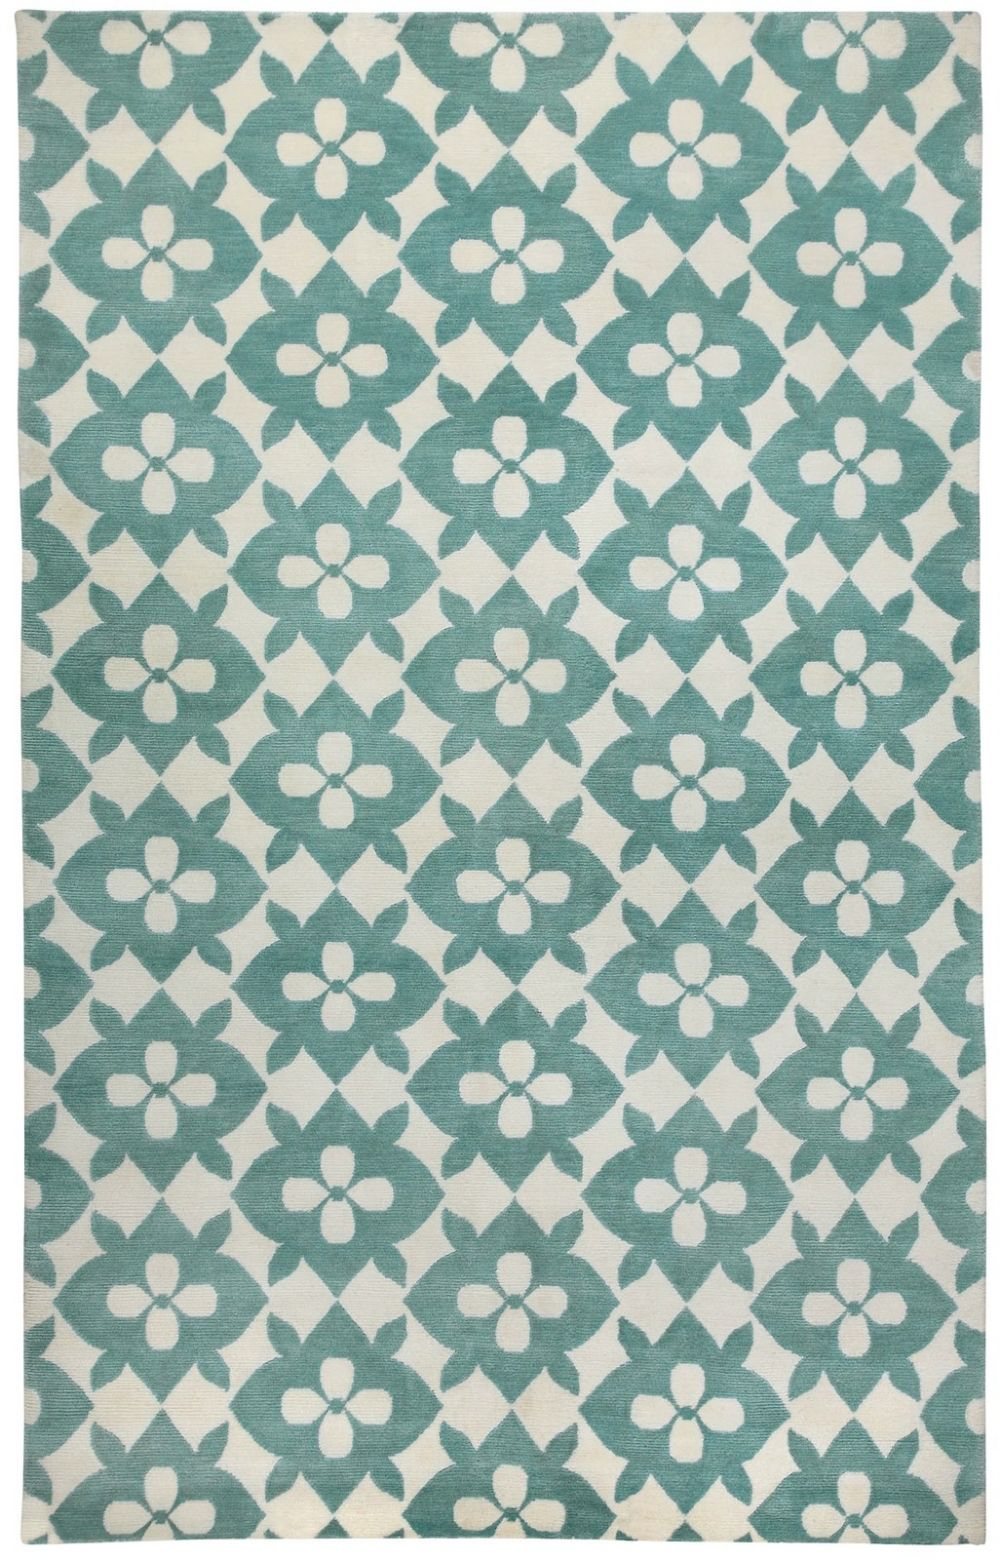 capel blossom contemporary area rug collection